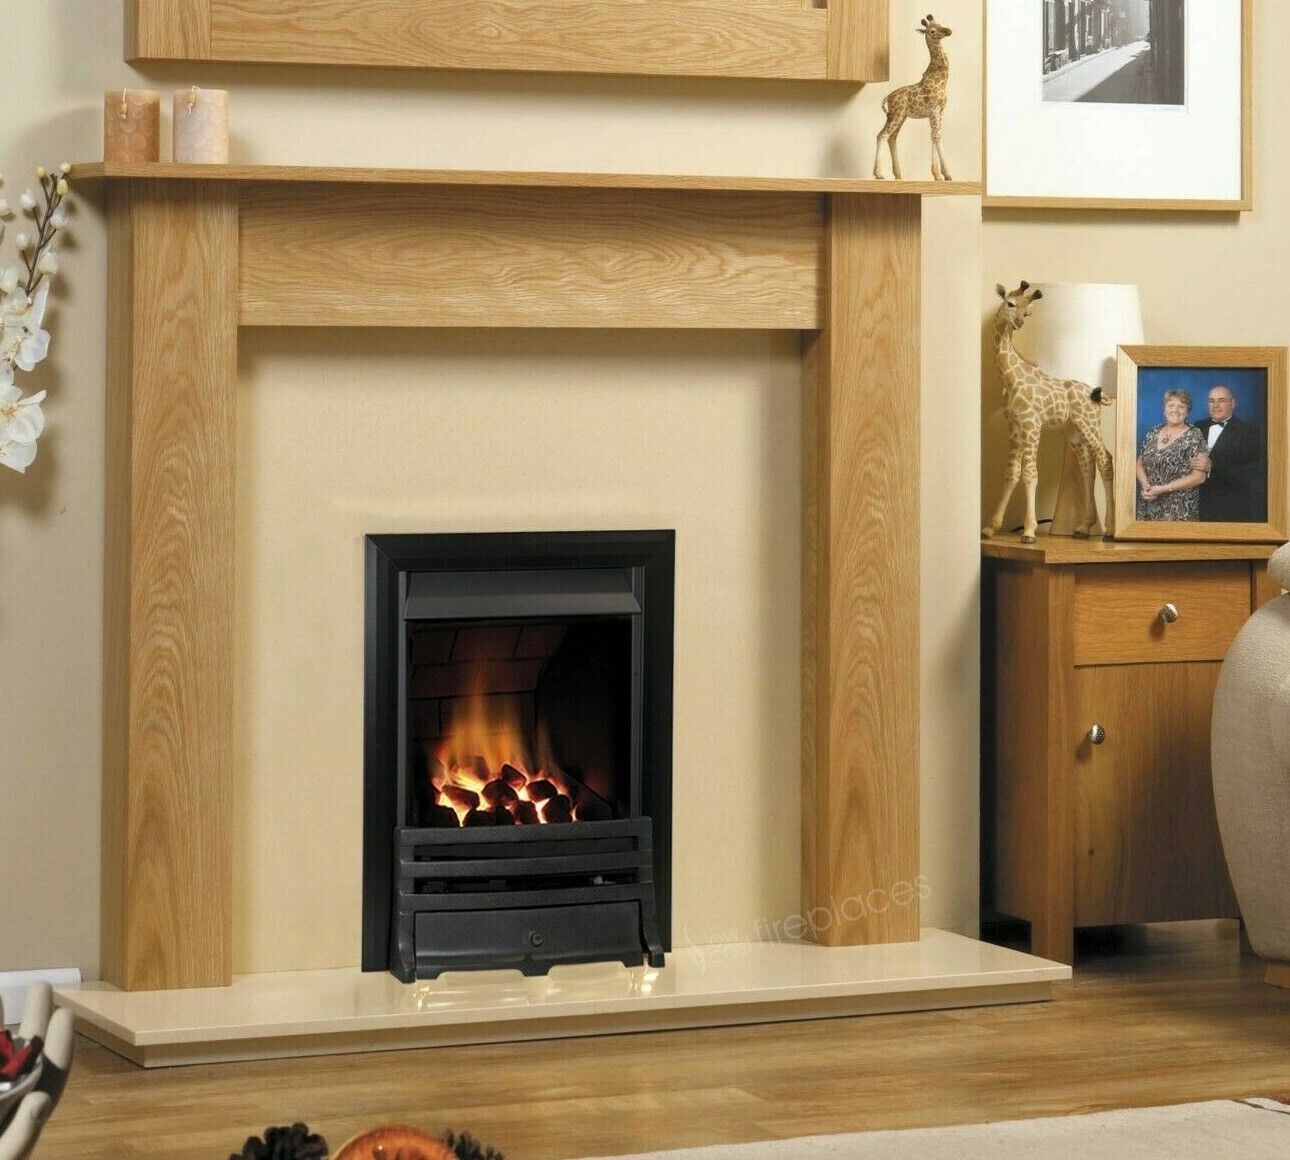 Gas Oak Surround Cream Marble Stone Modern Black Fire Fireplace Suite Lights 48 Ebay